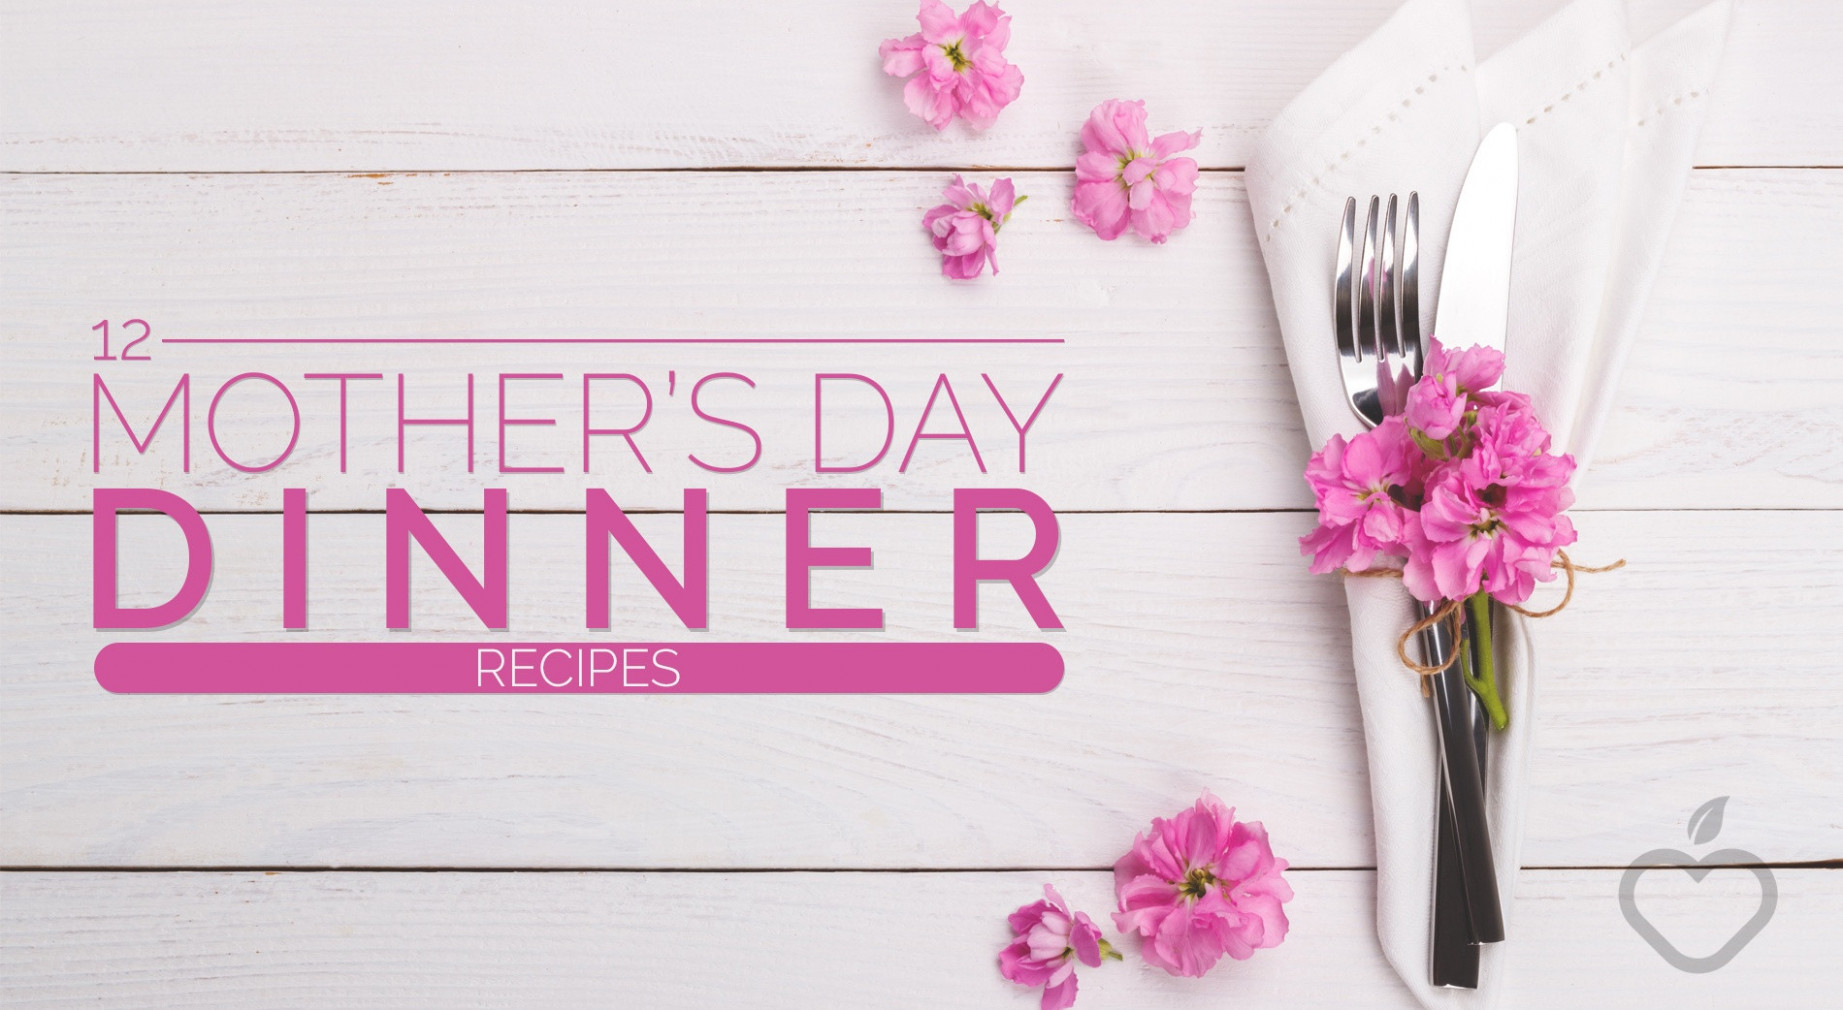 13 Best Ideas Mothers Day Dinners - The Best Recipes ..